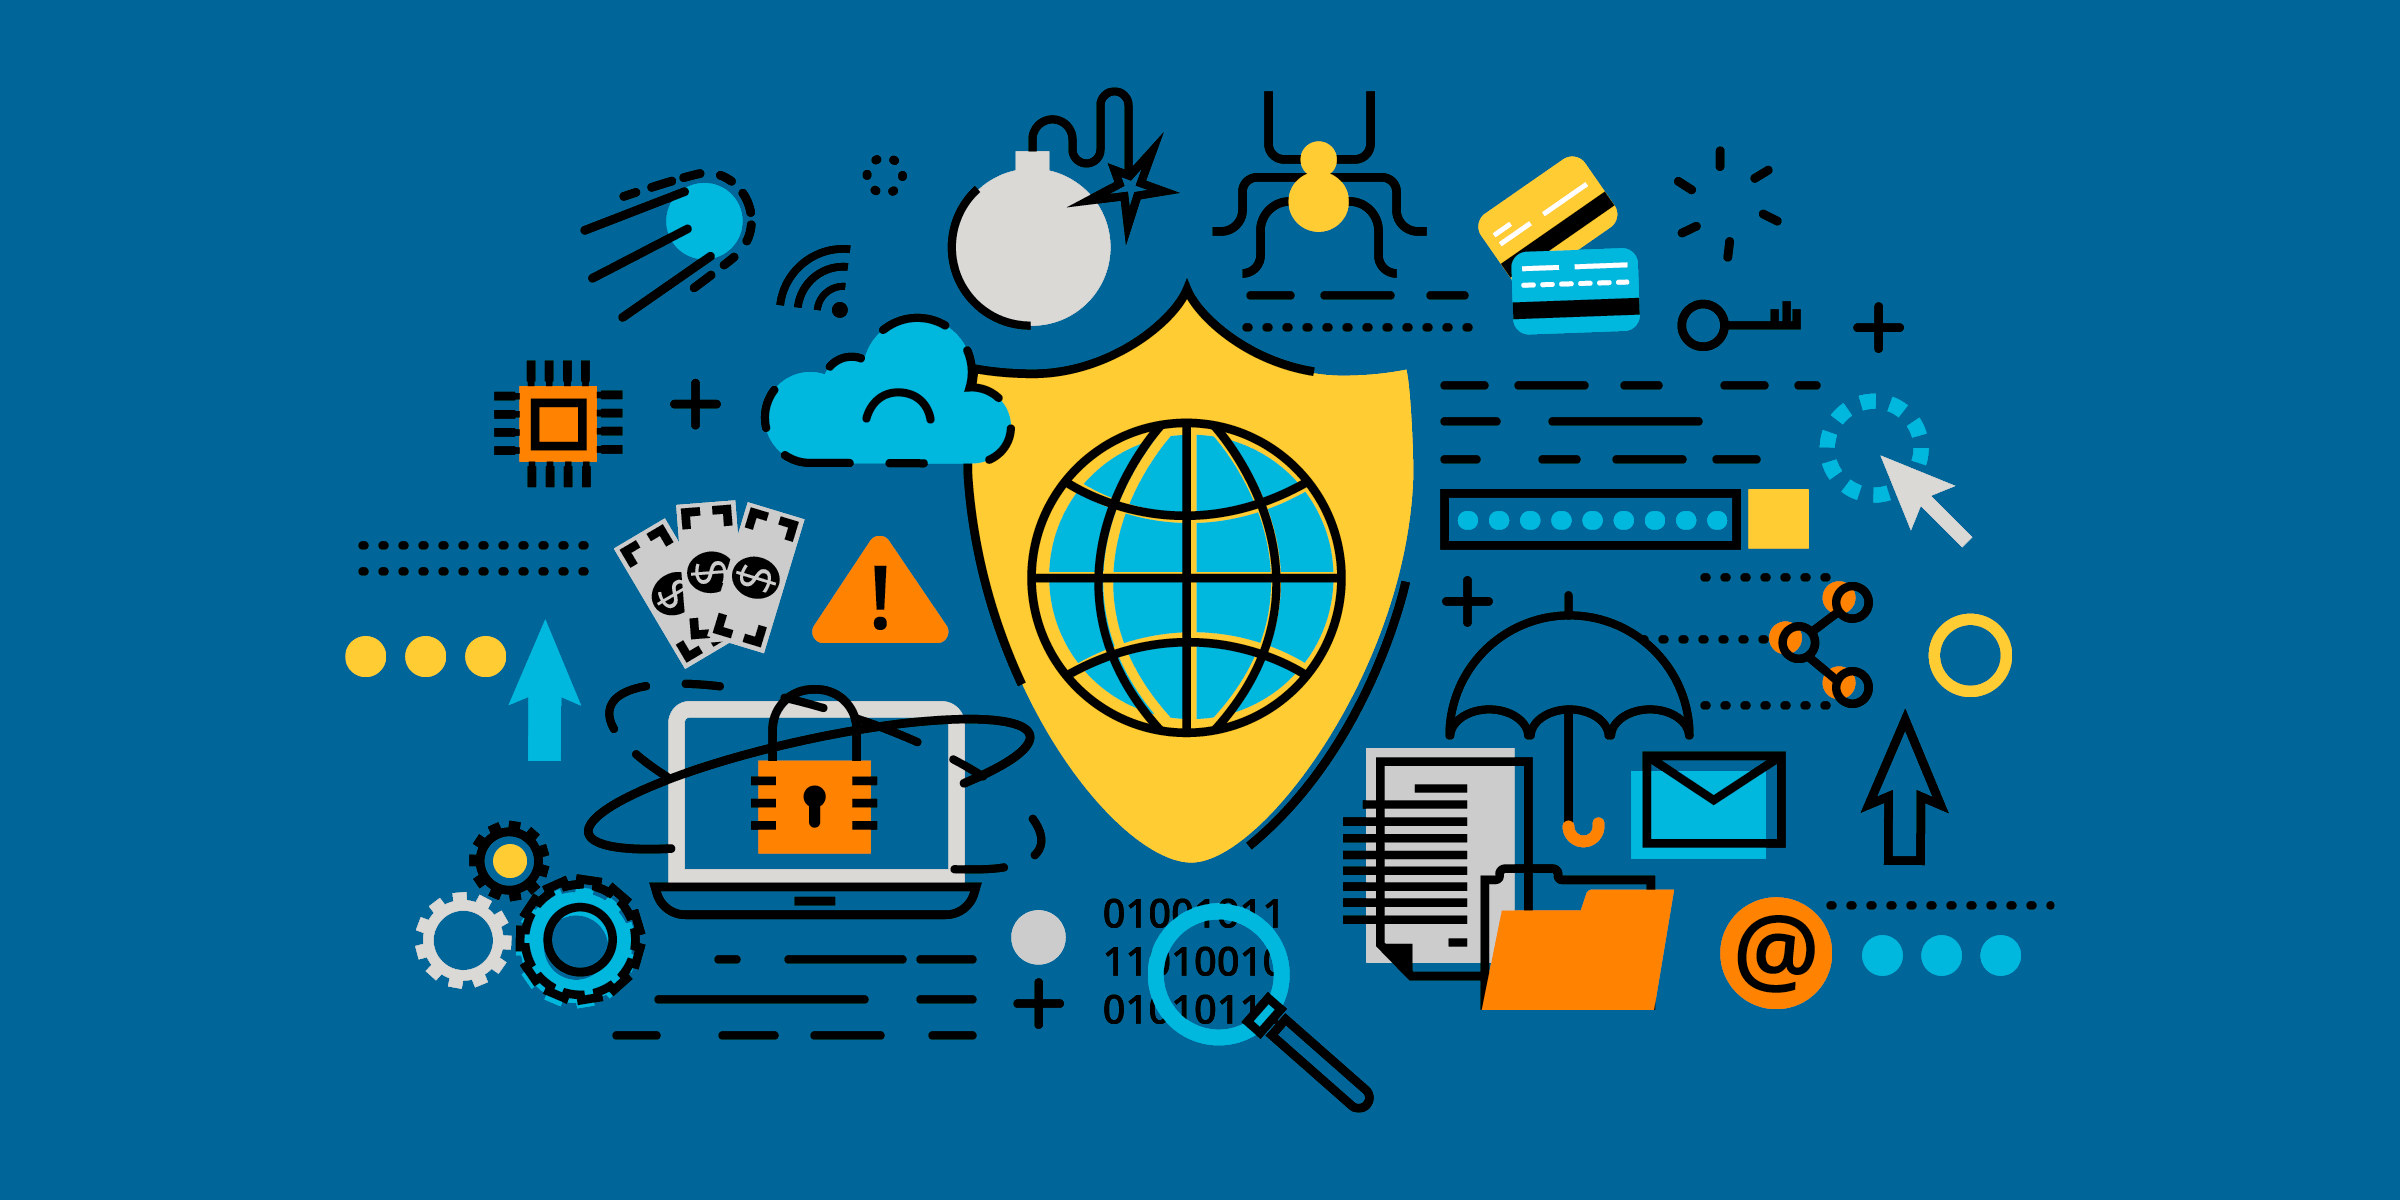 illustration of nonprofit security icons such as a locked computer, magnifying glass over zeros and ones, shield, umbrella, file folder, letter, bug, bomb, key, credit cards